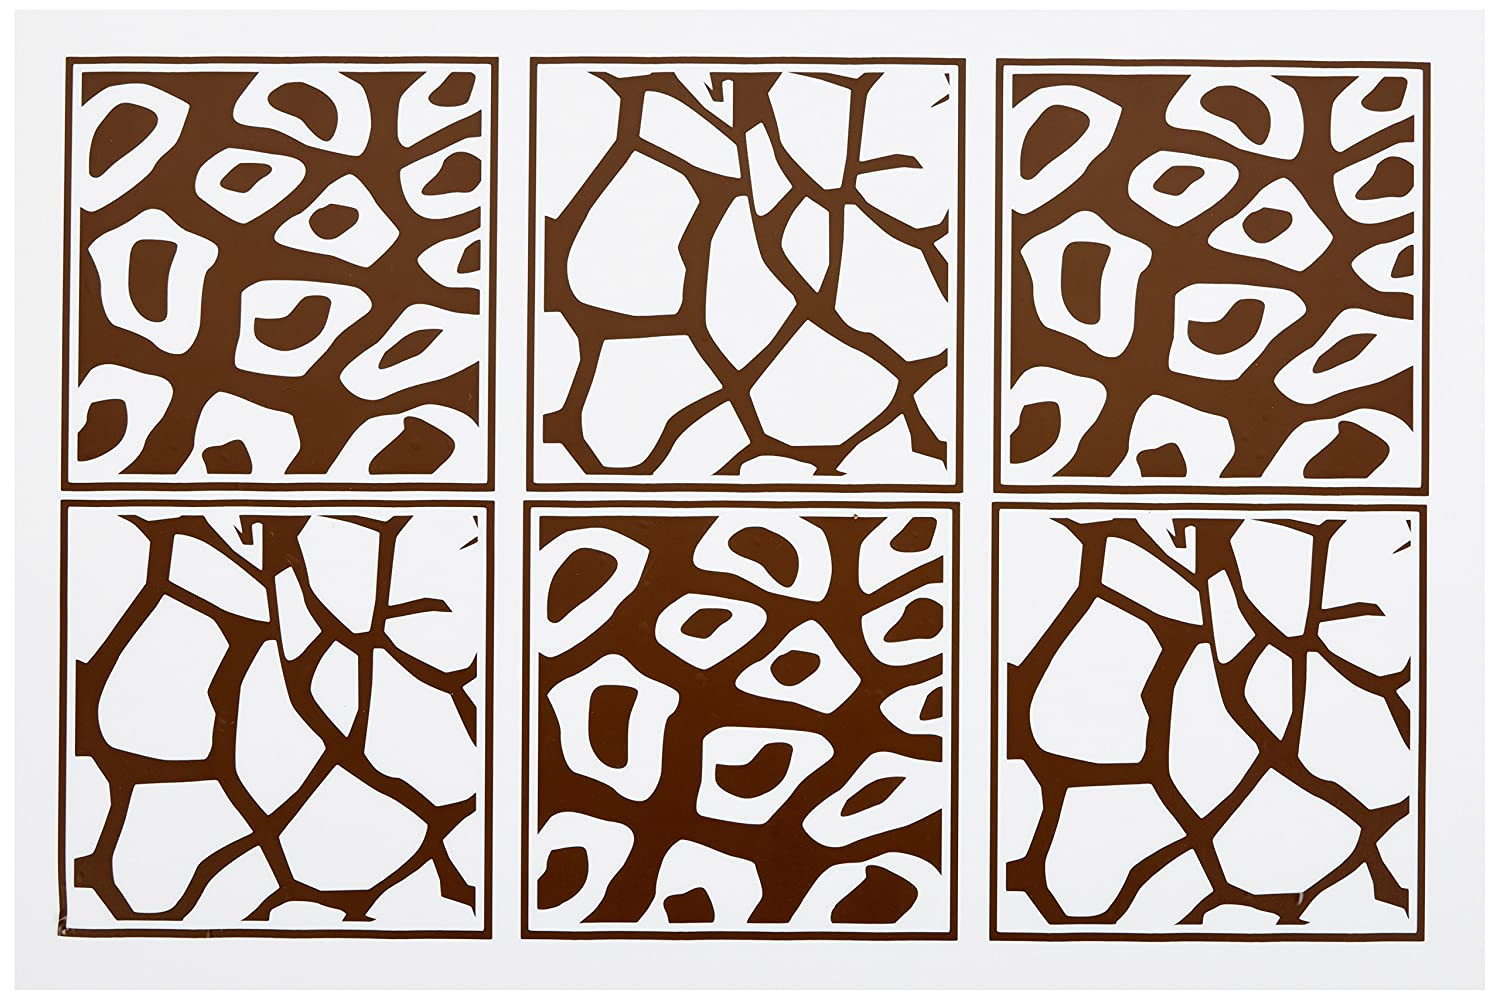 Wall Decor Plus More WDPM004 Animal Print Wall Decor 6 Squares Vinyl Sticker Decals Chocolate Brown Chocolate Brown